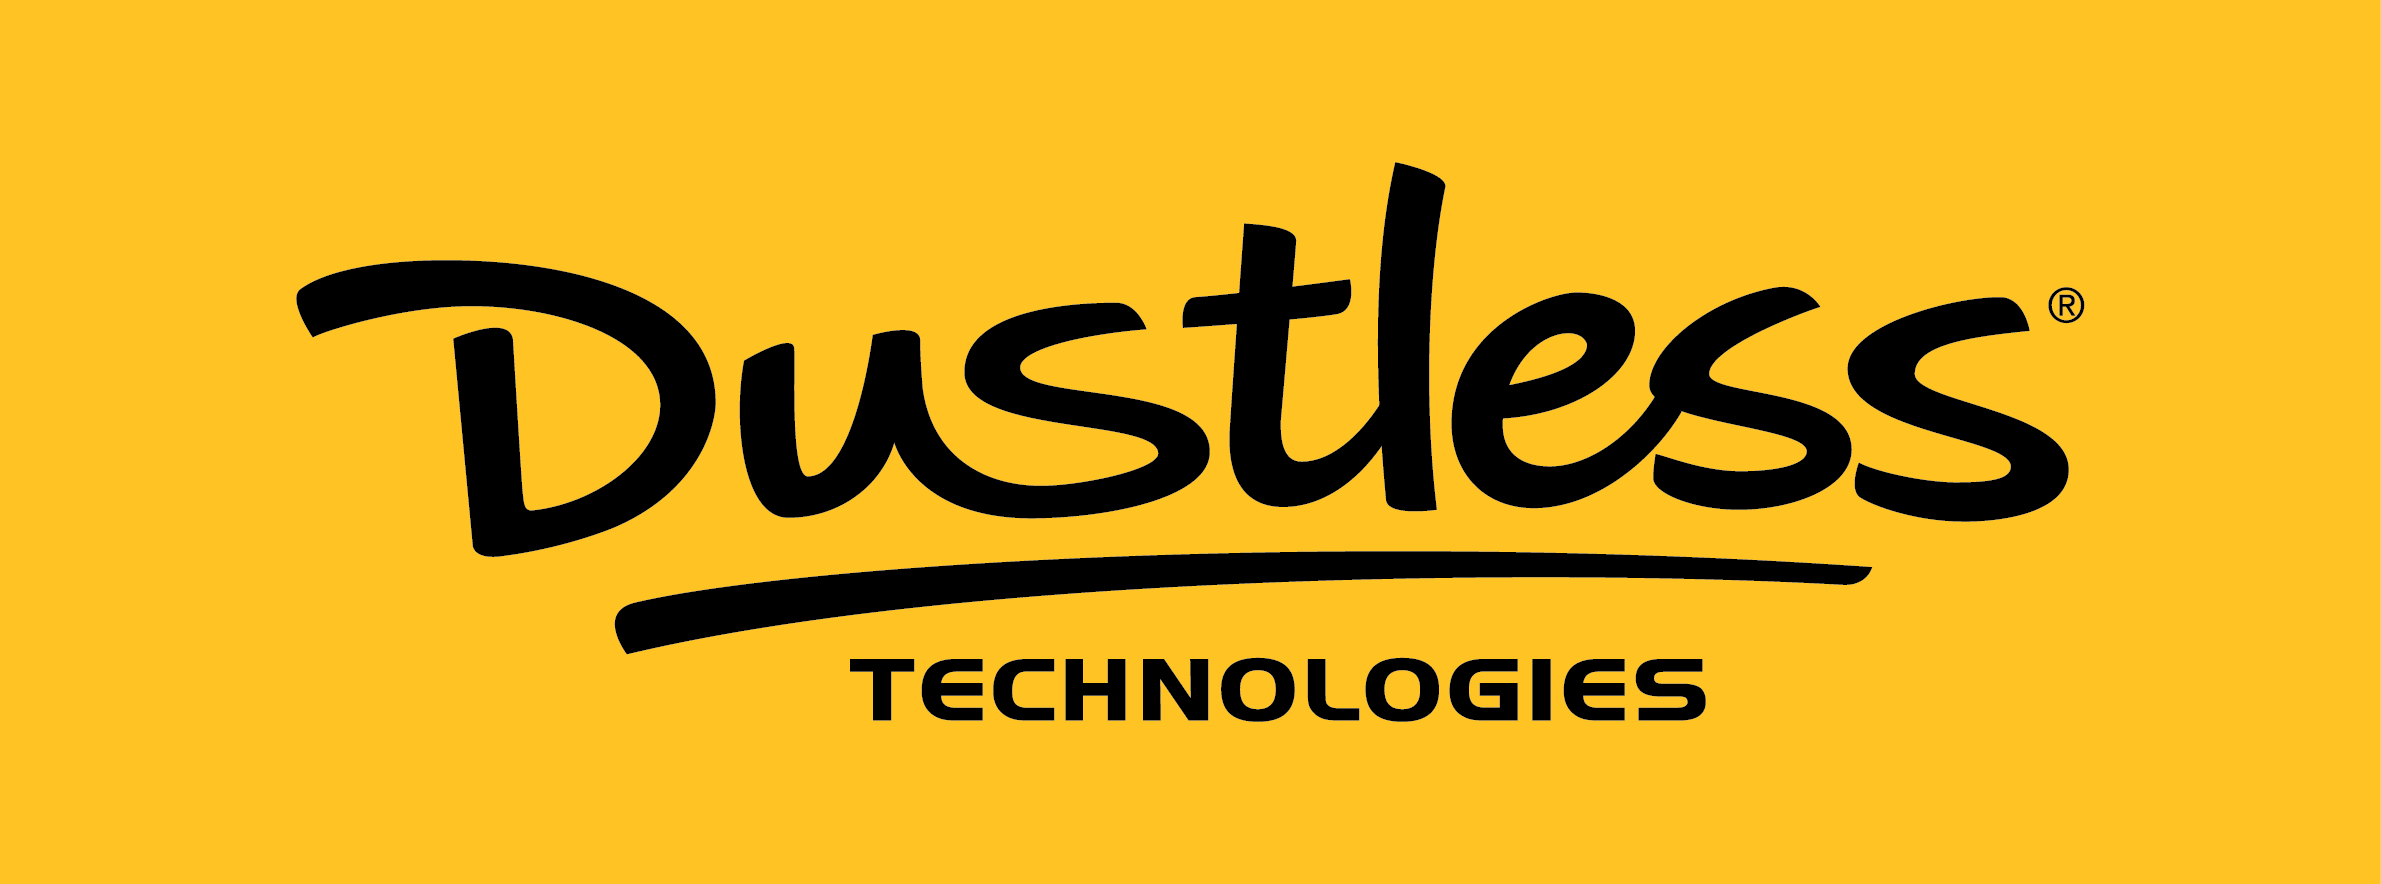 Dustless Technologies Logo